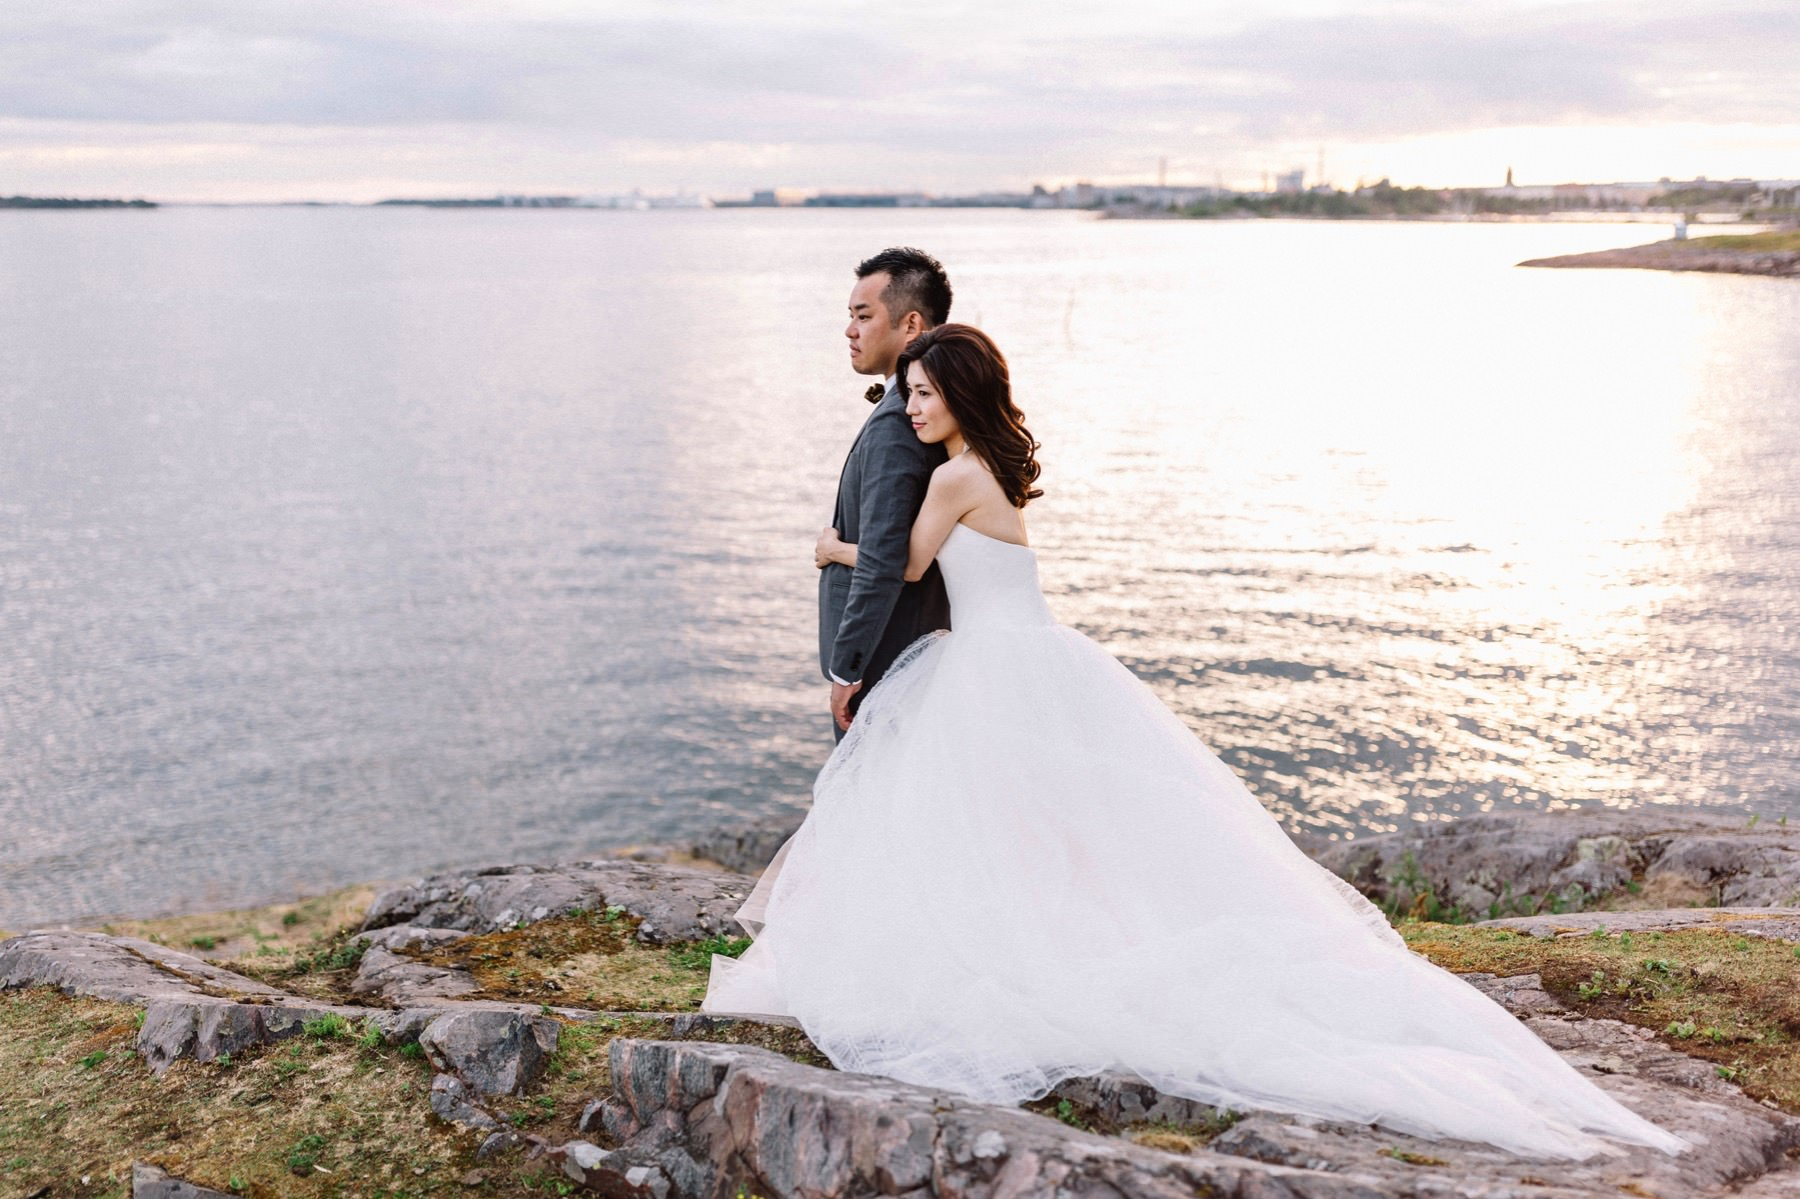 prewedding photography in Finland